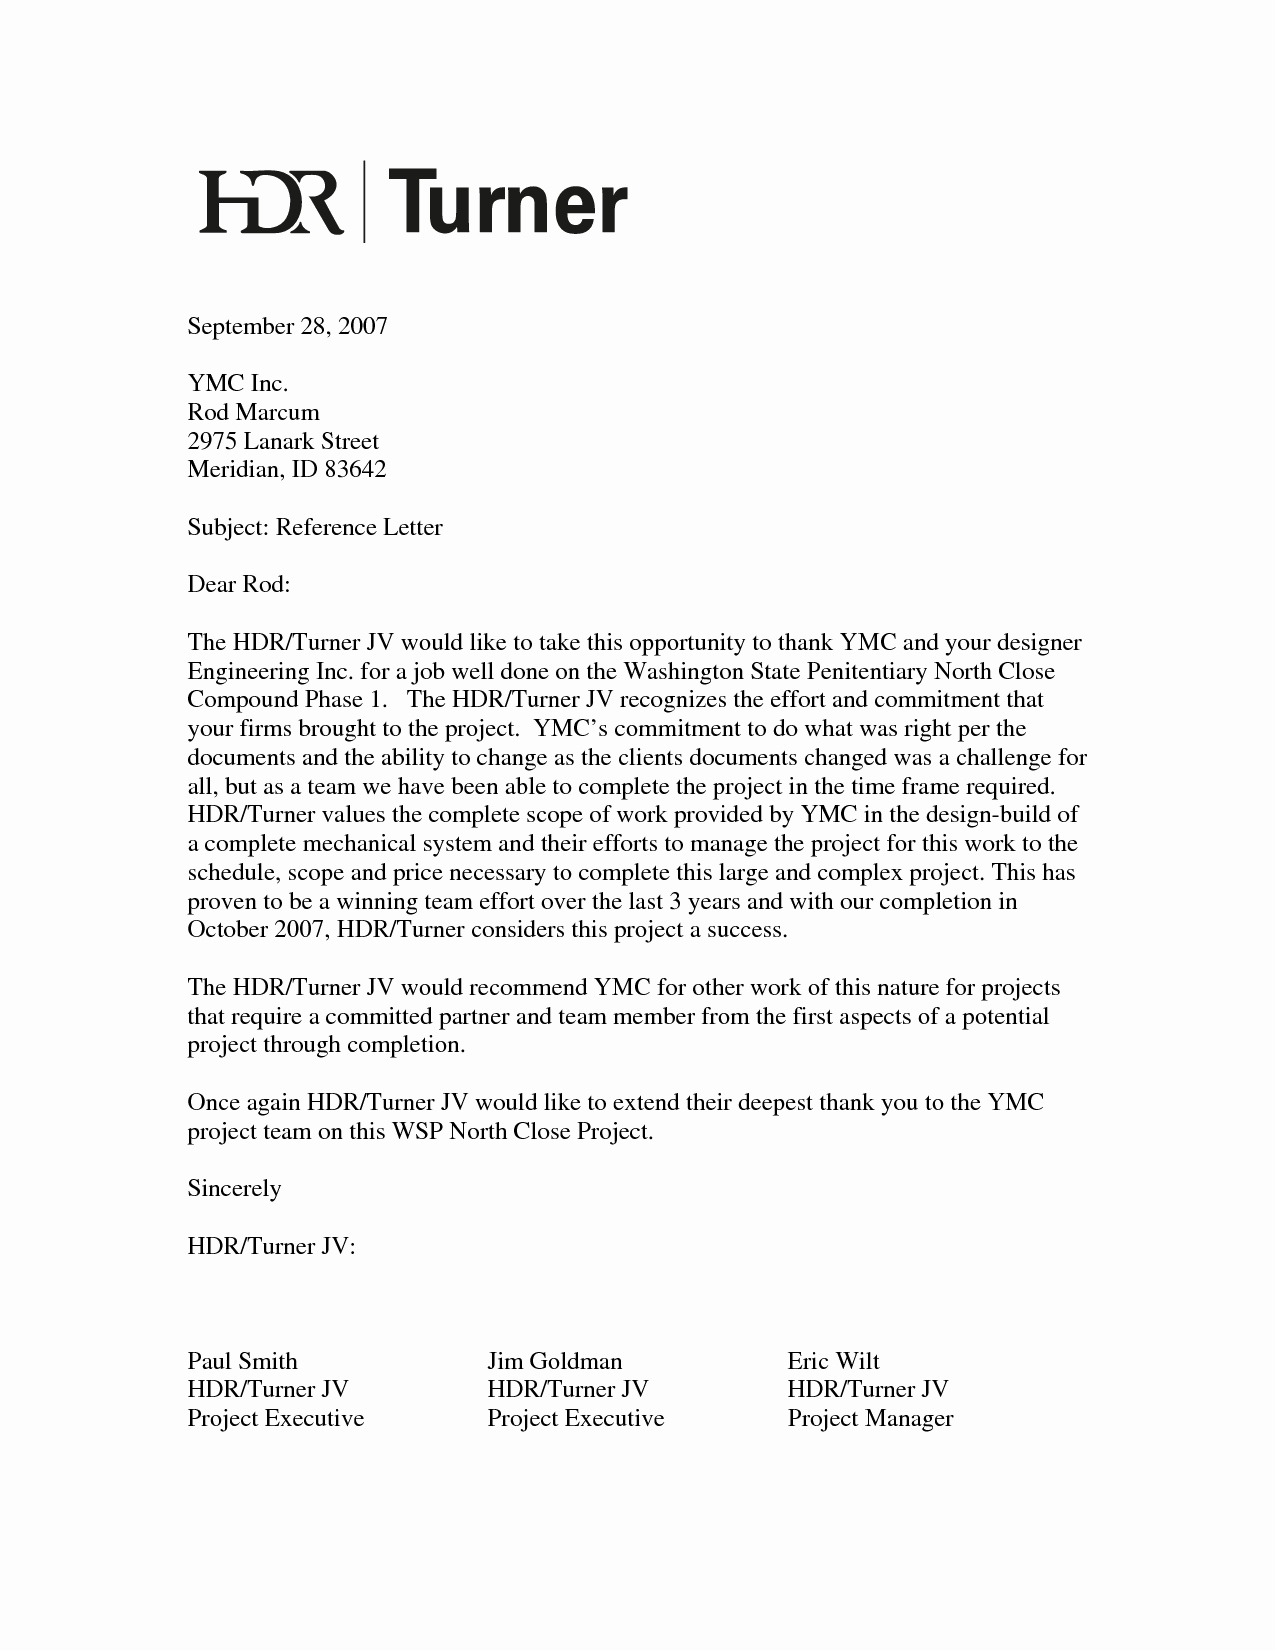 Letter Of Recommendation Employment Template New Best S Of Job Reference Sample Re Mendation Letter